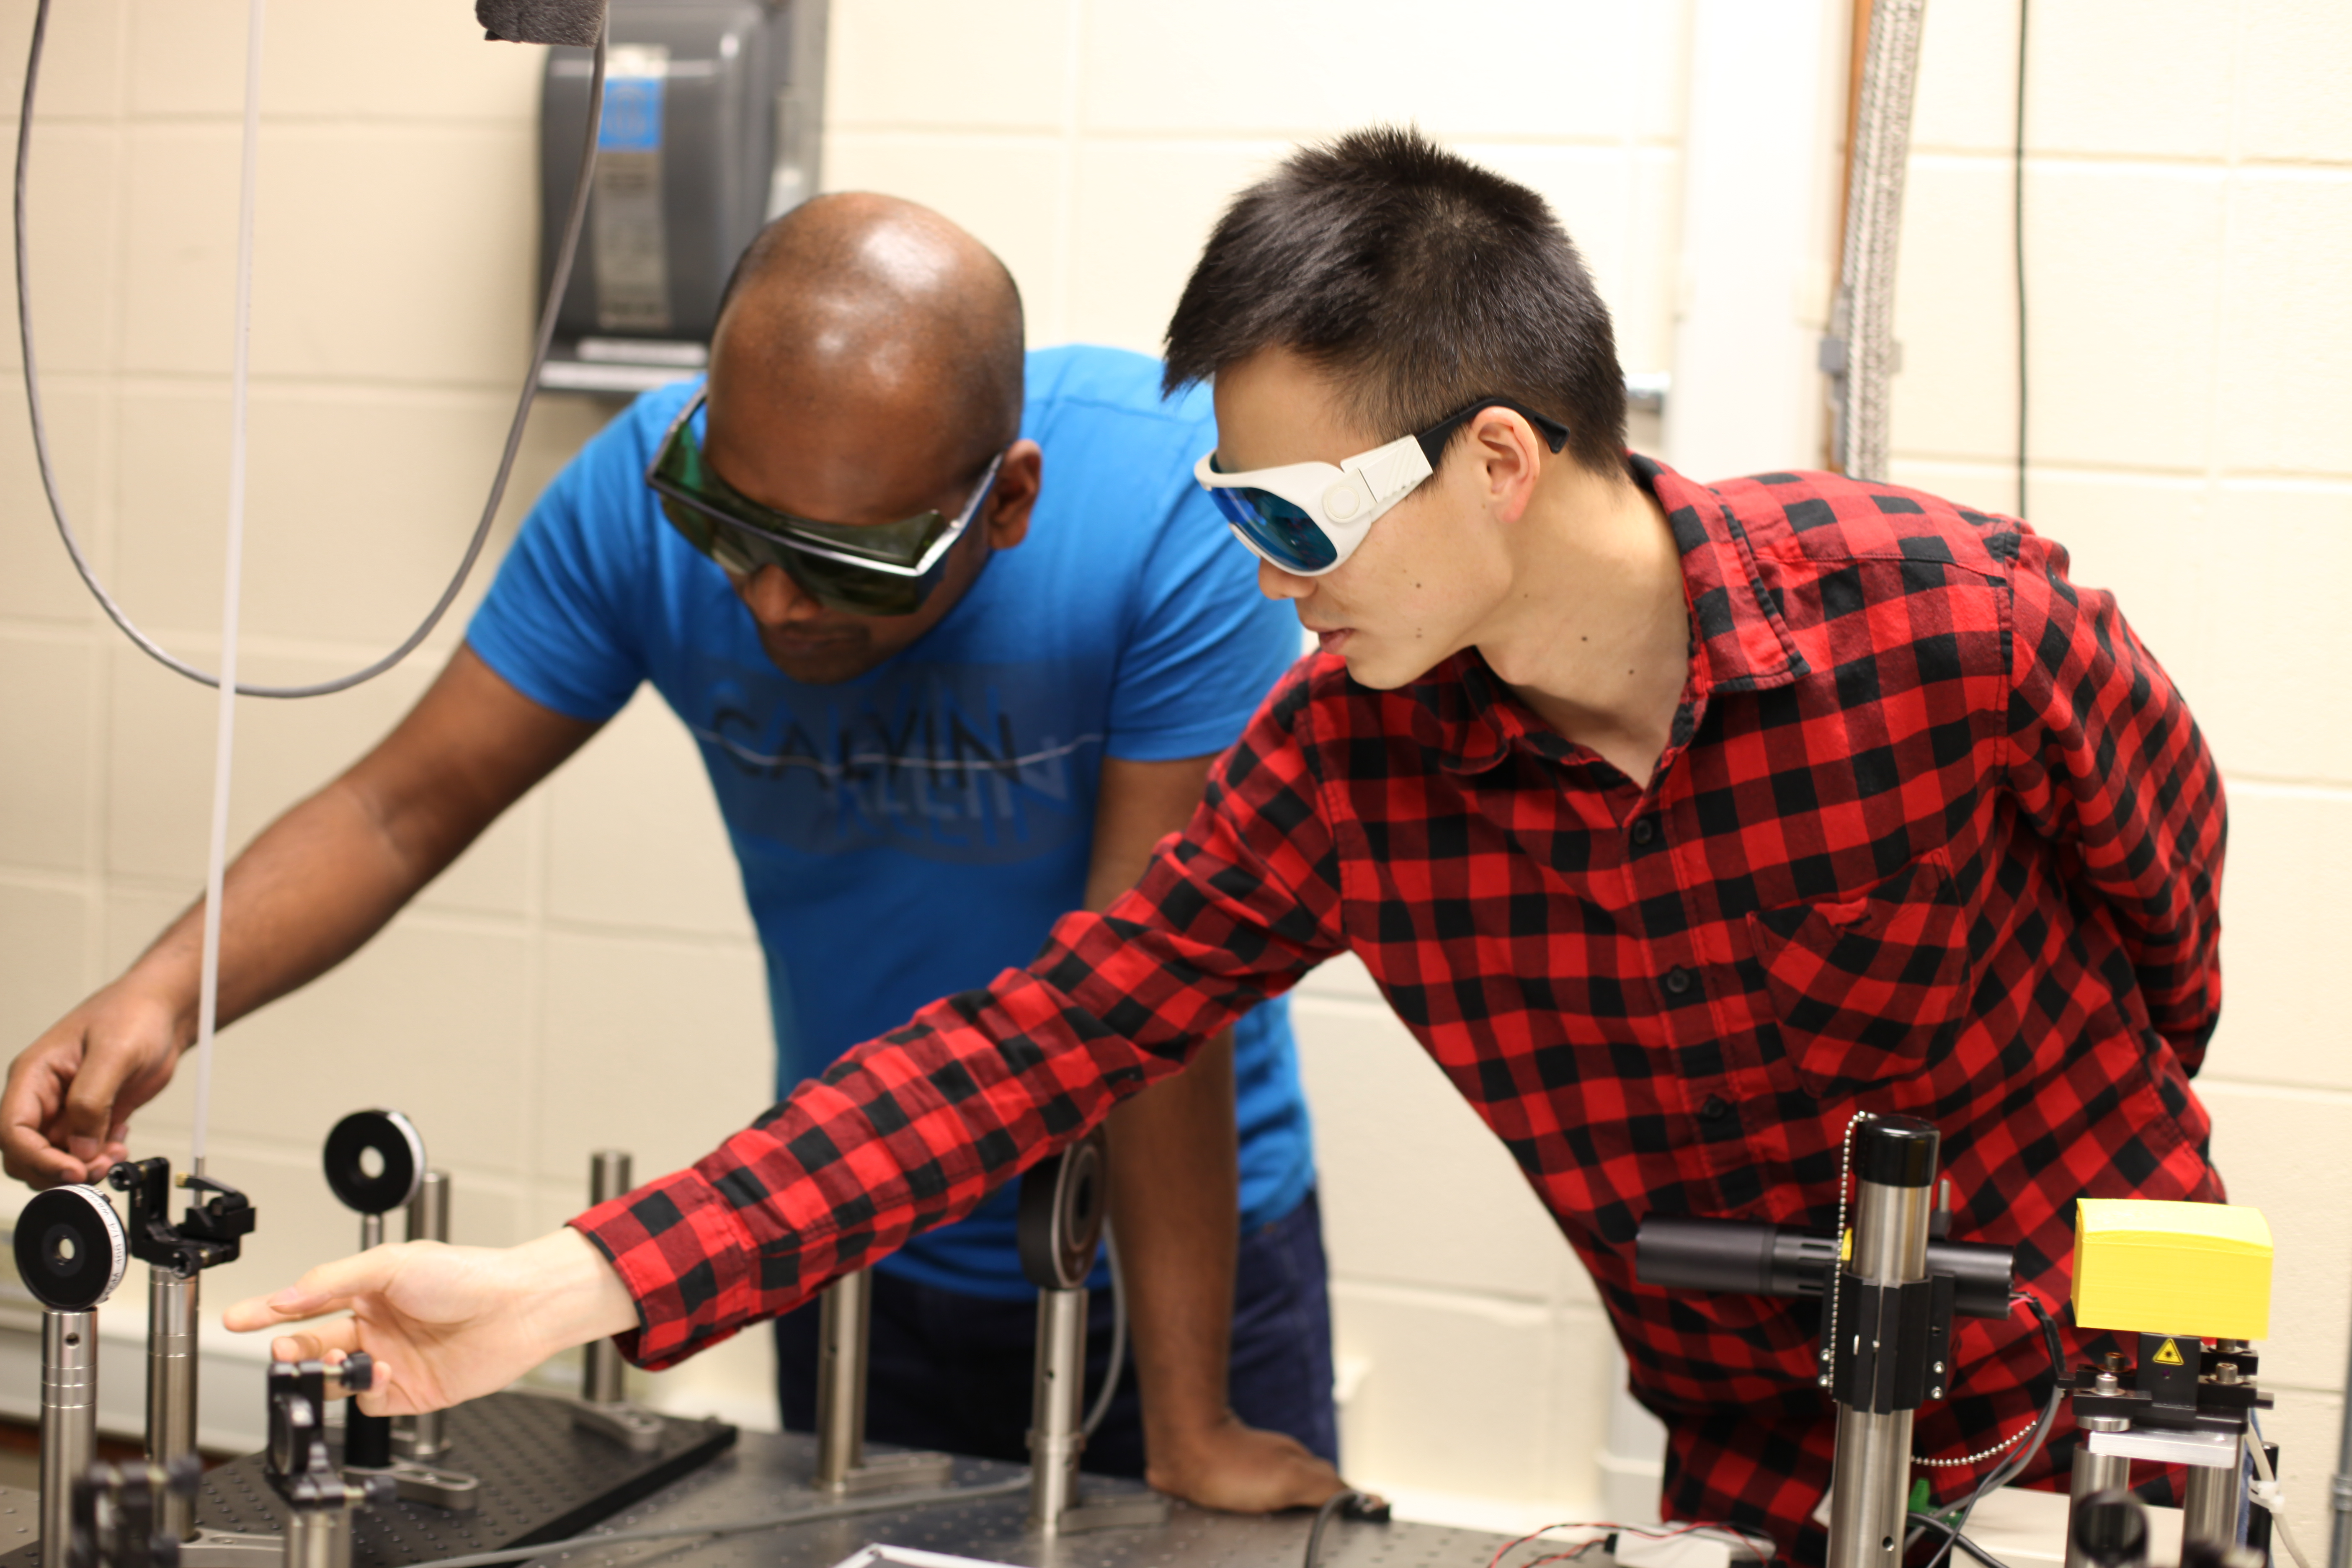 SD Mines students Ishara Ratnayake and Lin Kang work with Smith to develop laser physics technologies.